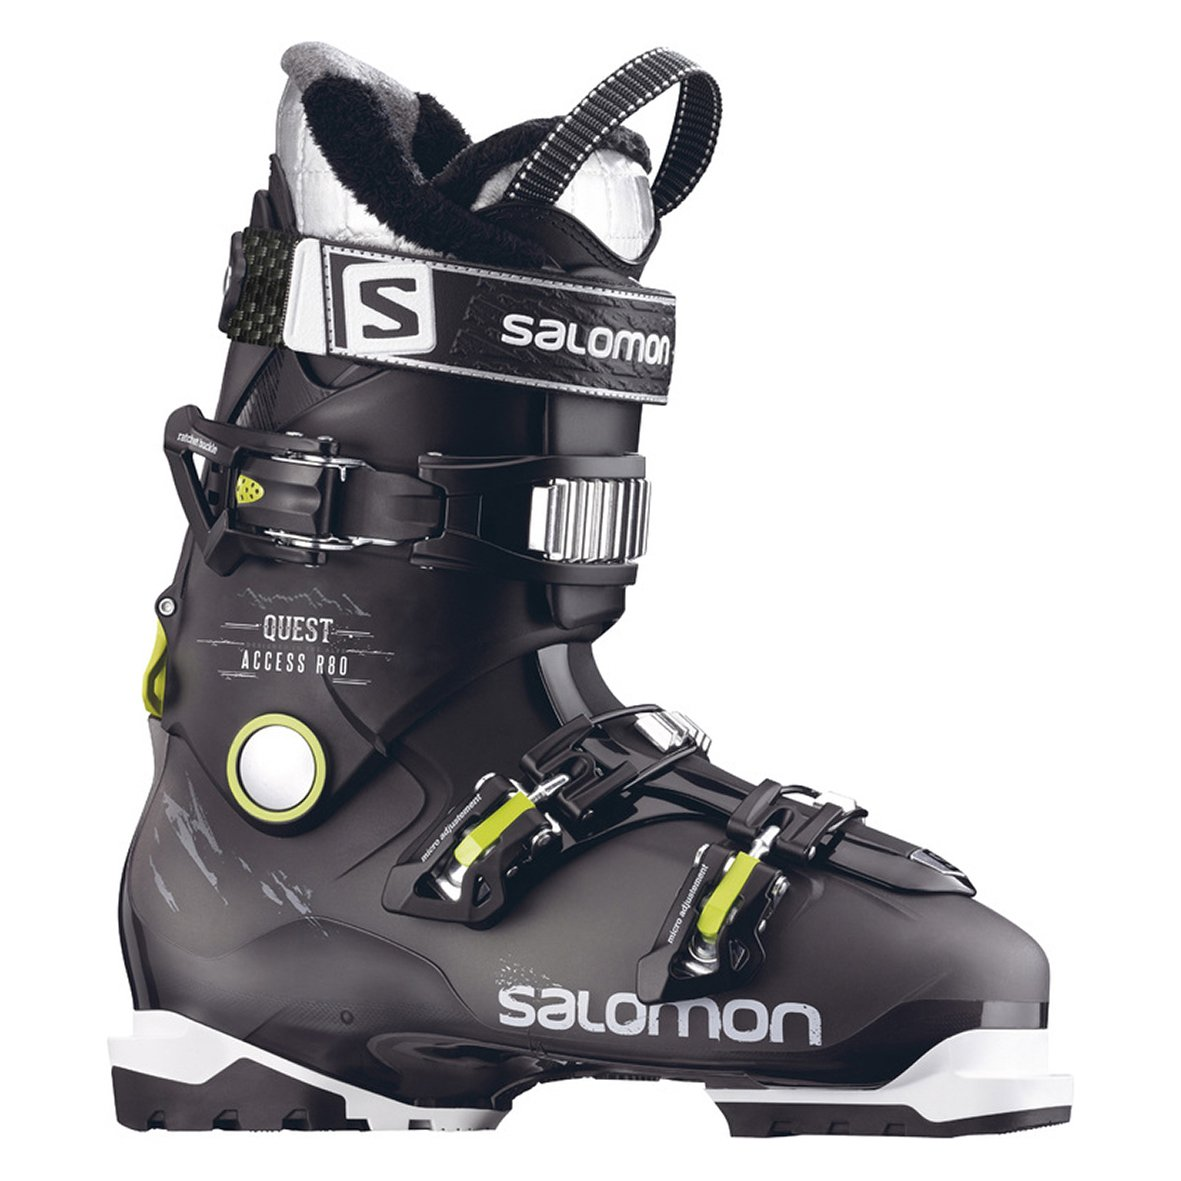 Access ski Anthracite de Salomon de homme R80Chaussures Quest KJ3uTl1cF